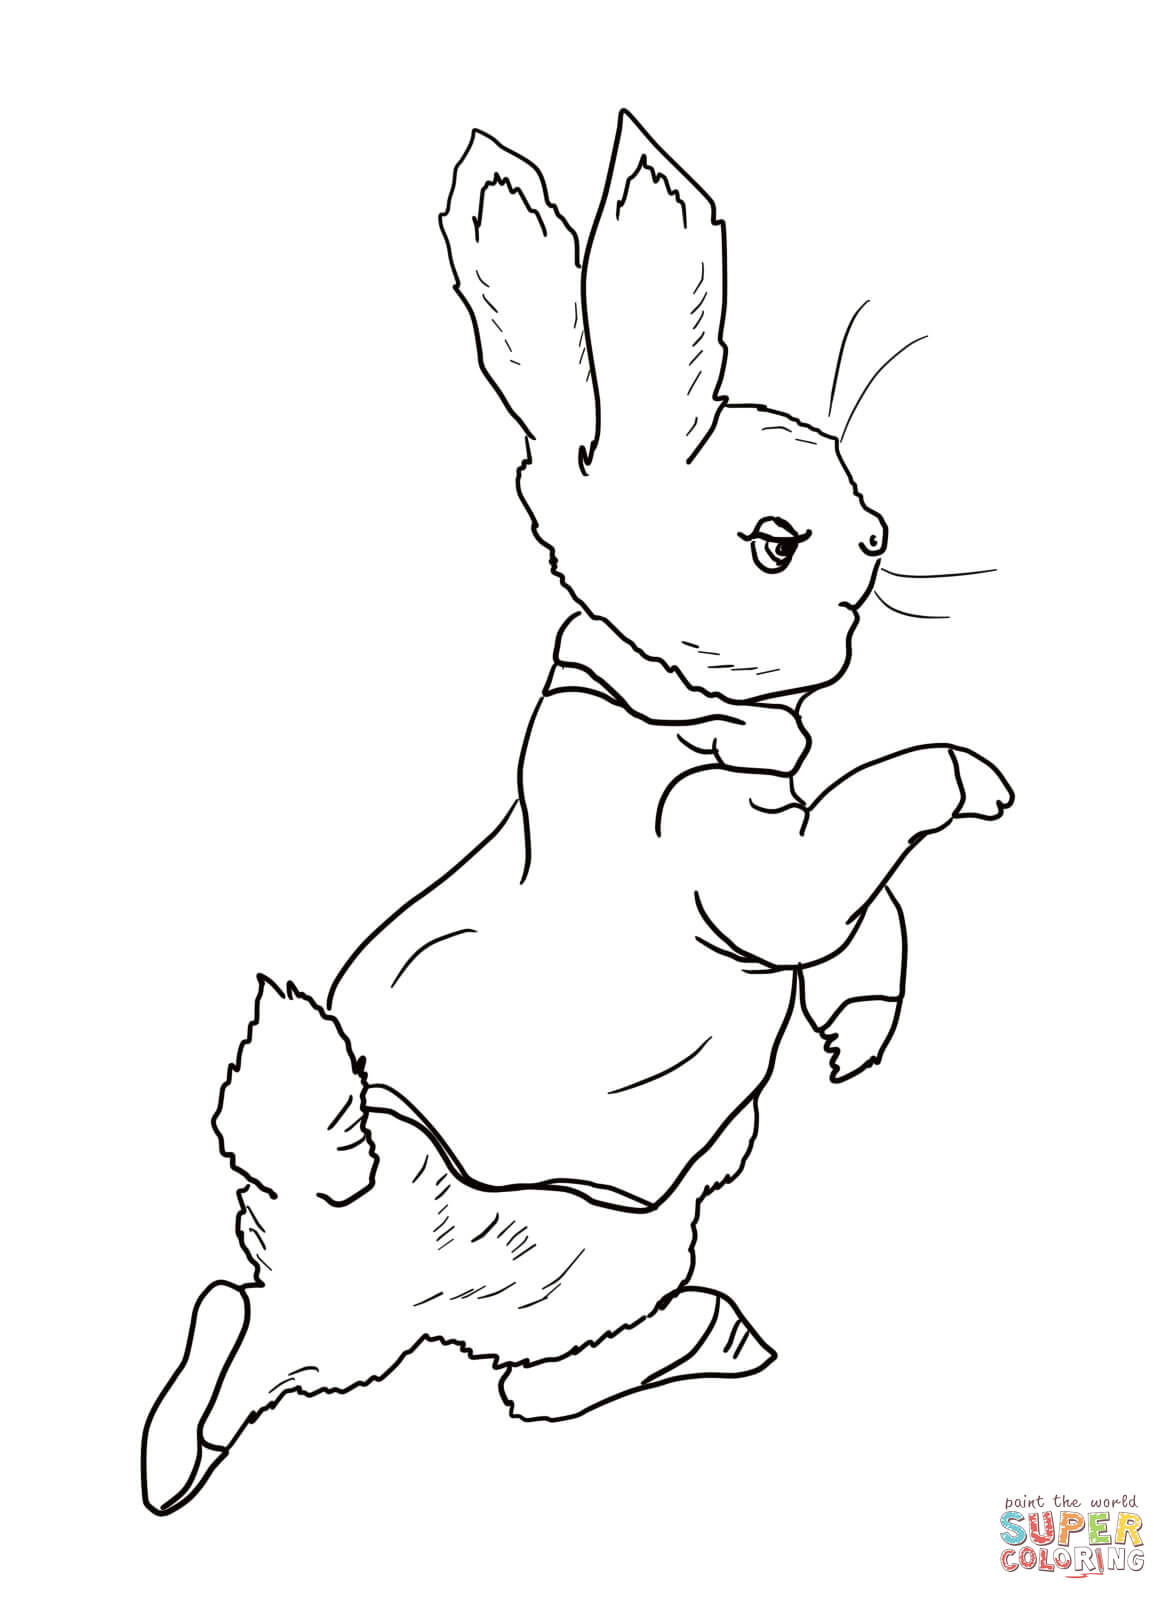 1168x1600 Bunny Pictures To Print Disney Coloring Pages Kids Coloring. Peter